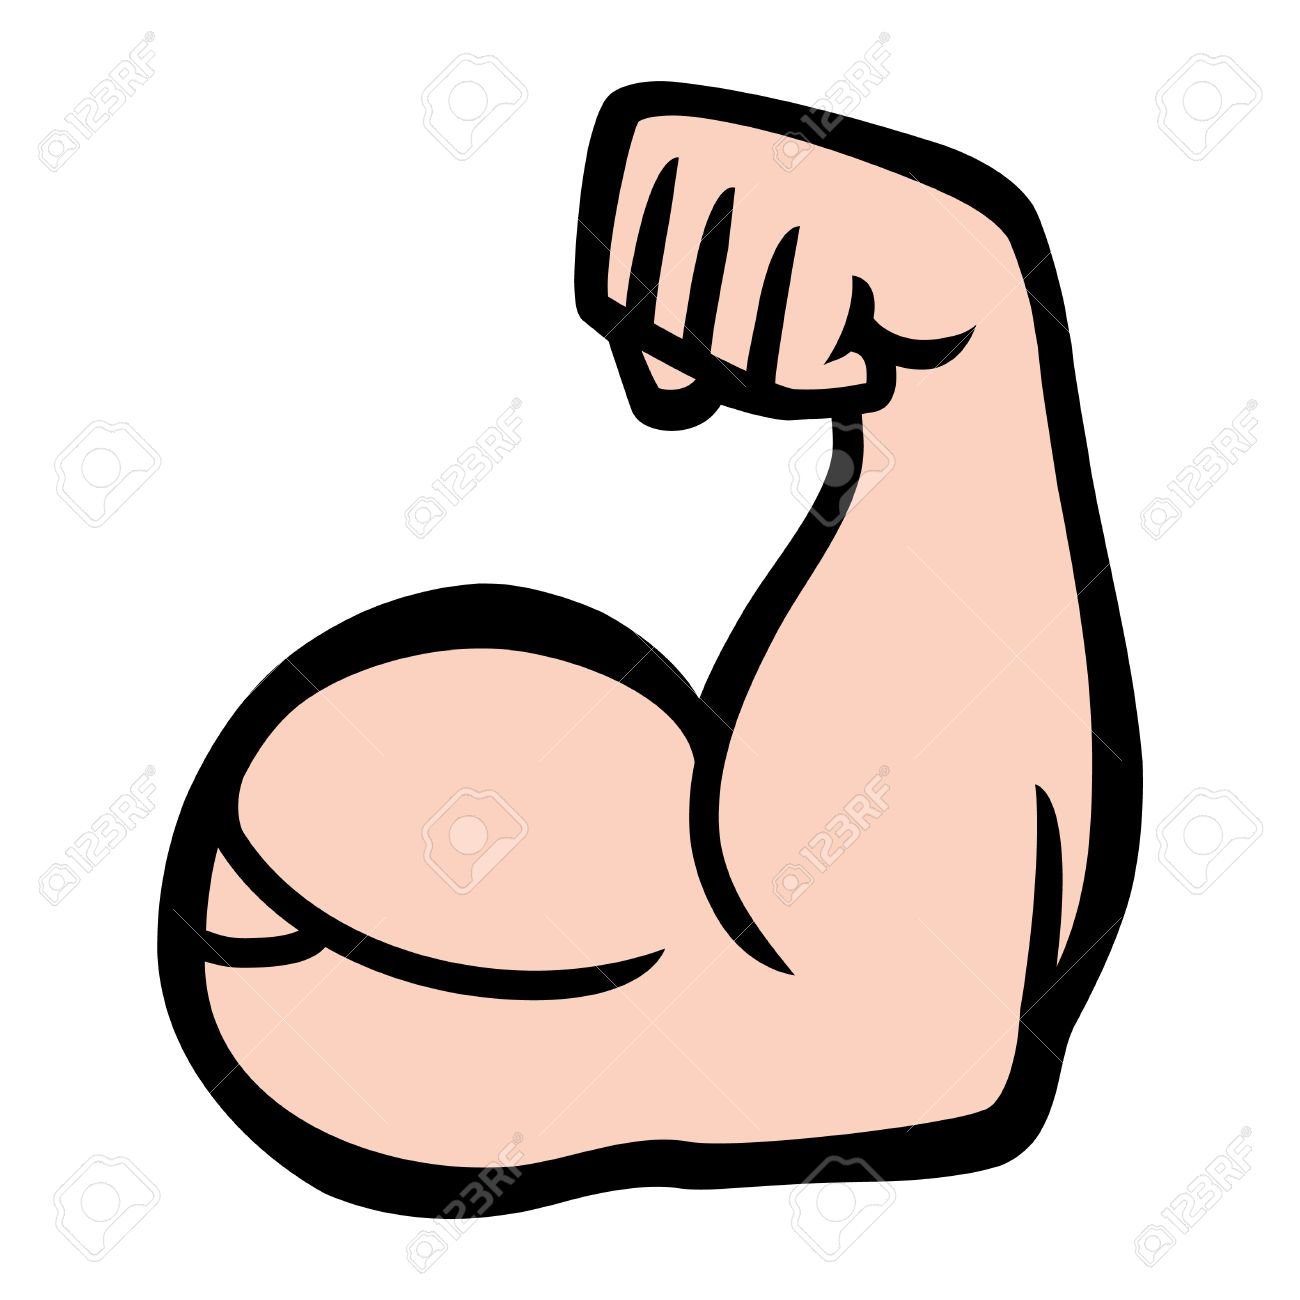 graphic royalty free download Arm flexing clipart. Flexed station .